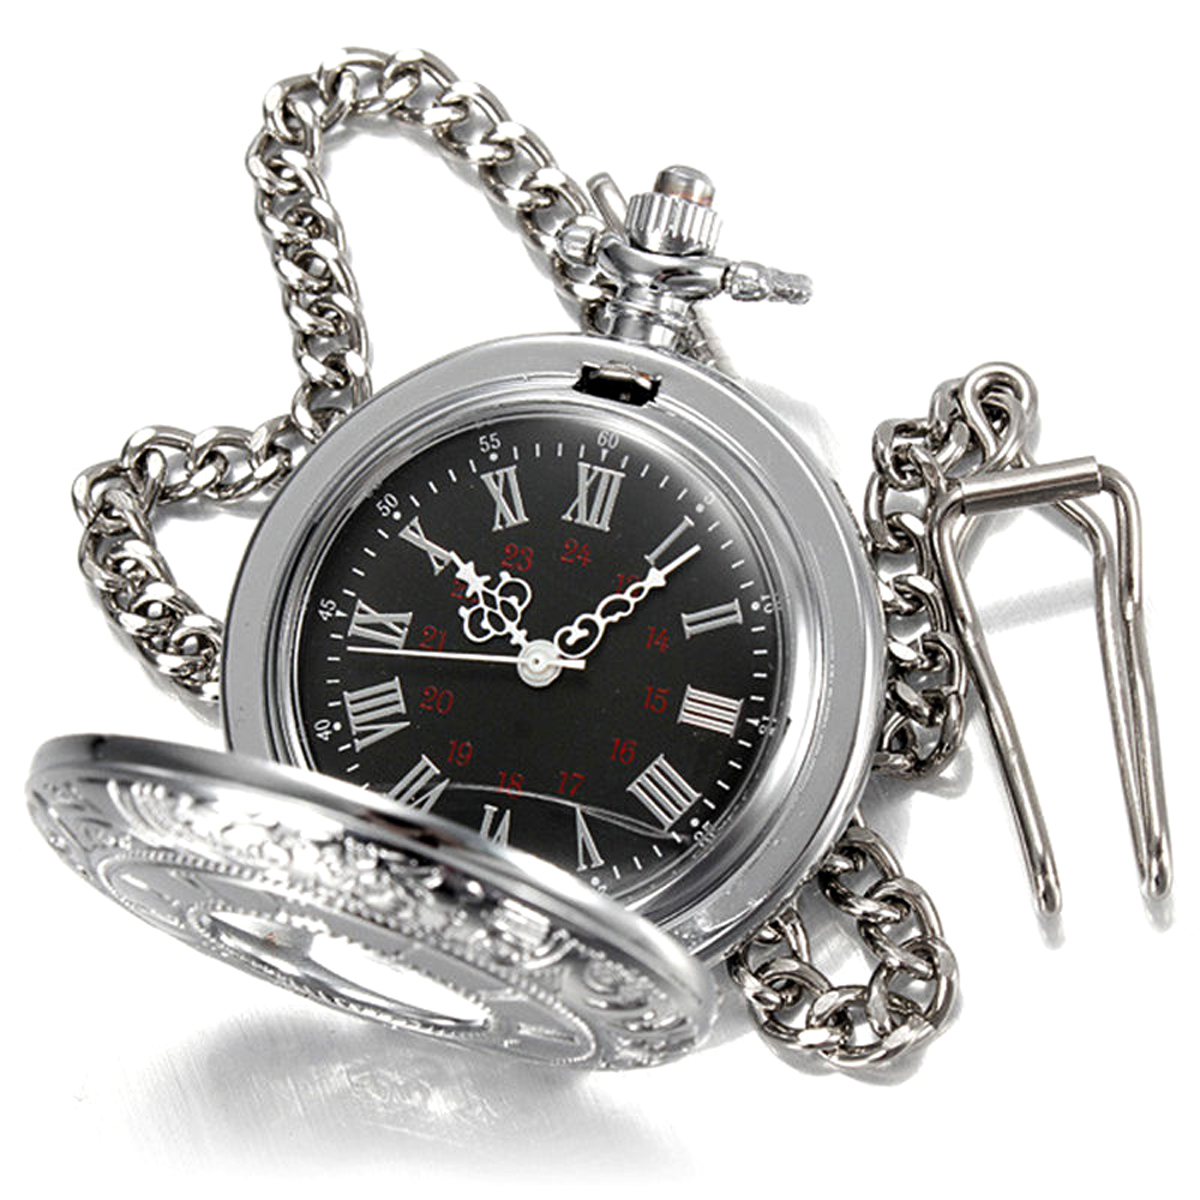 Shellhard New Arrival Hollow Silver Pendant Fob Pocket Watch Roman Numerals Black Dial Quartz Pocket Watch For Men Women